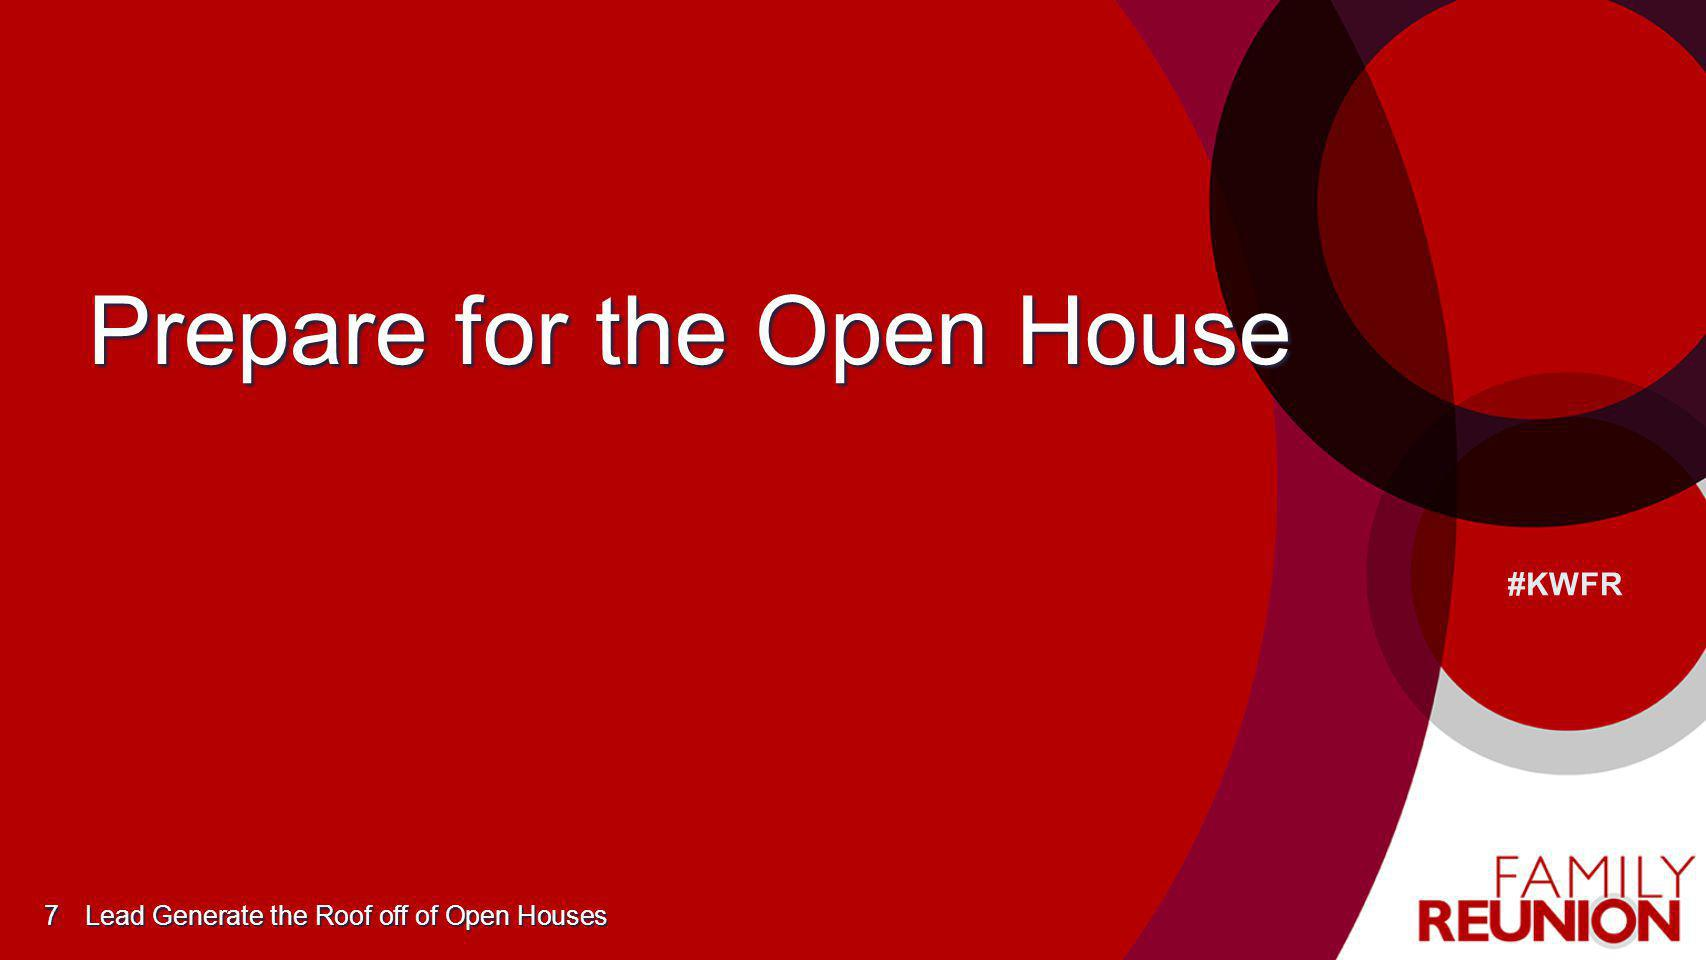 Prepare for the Open House